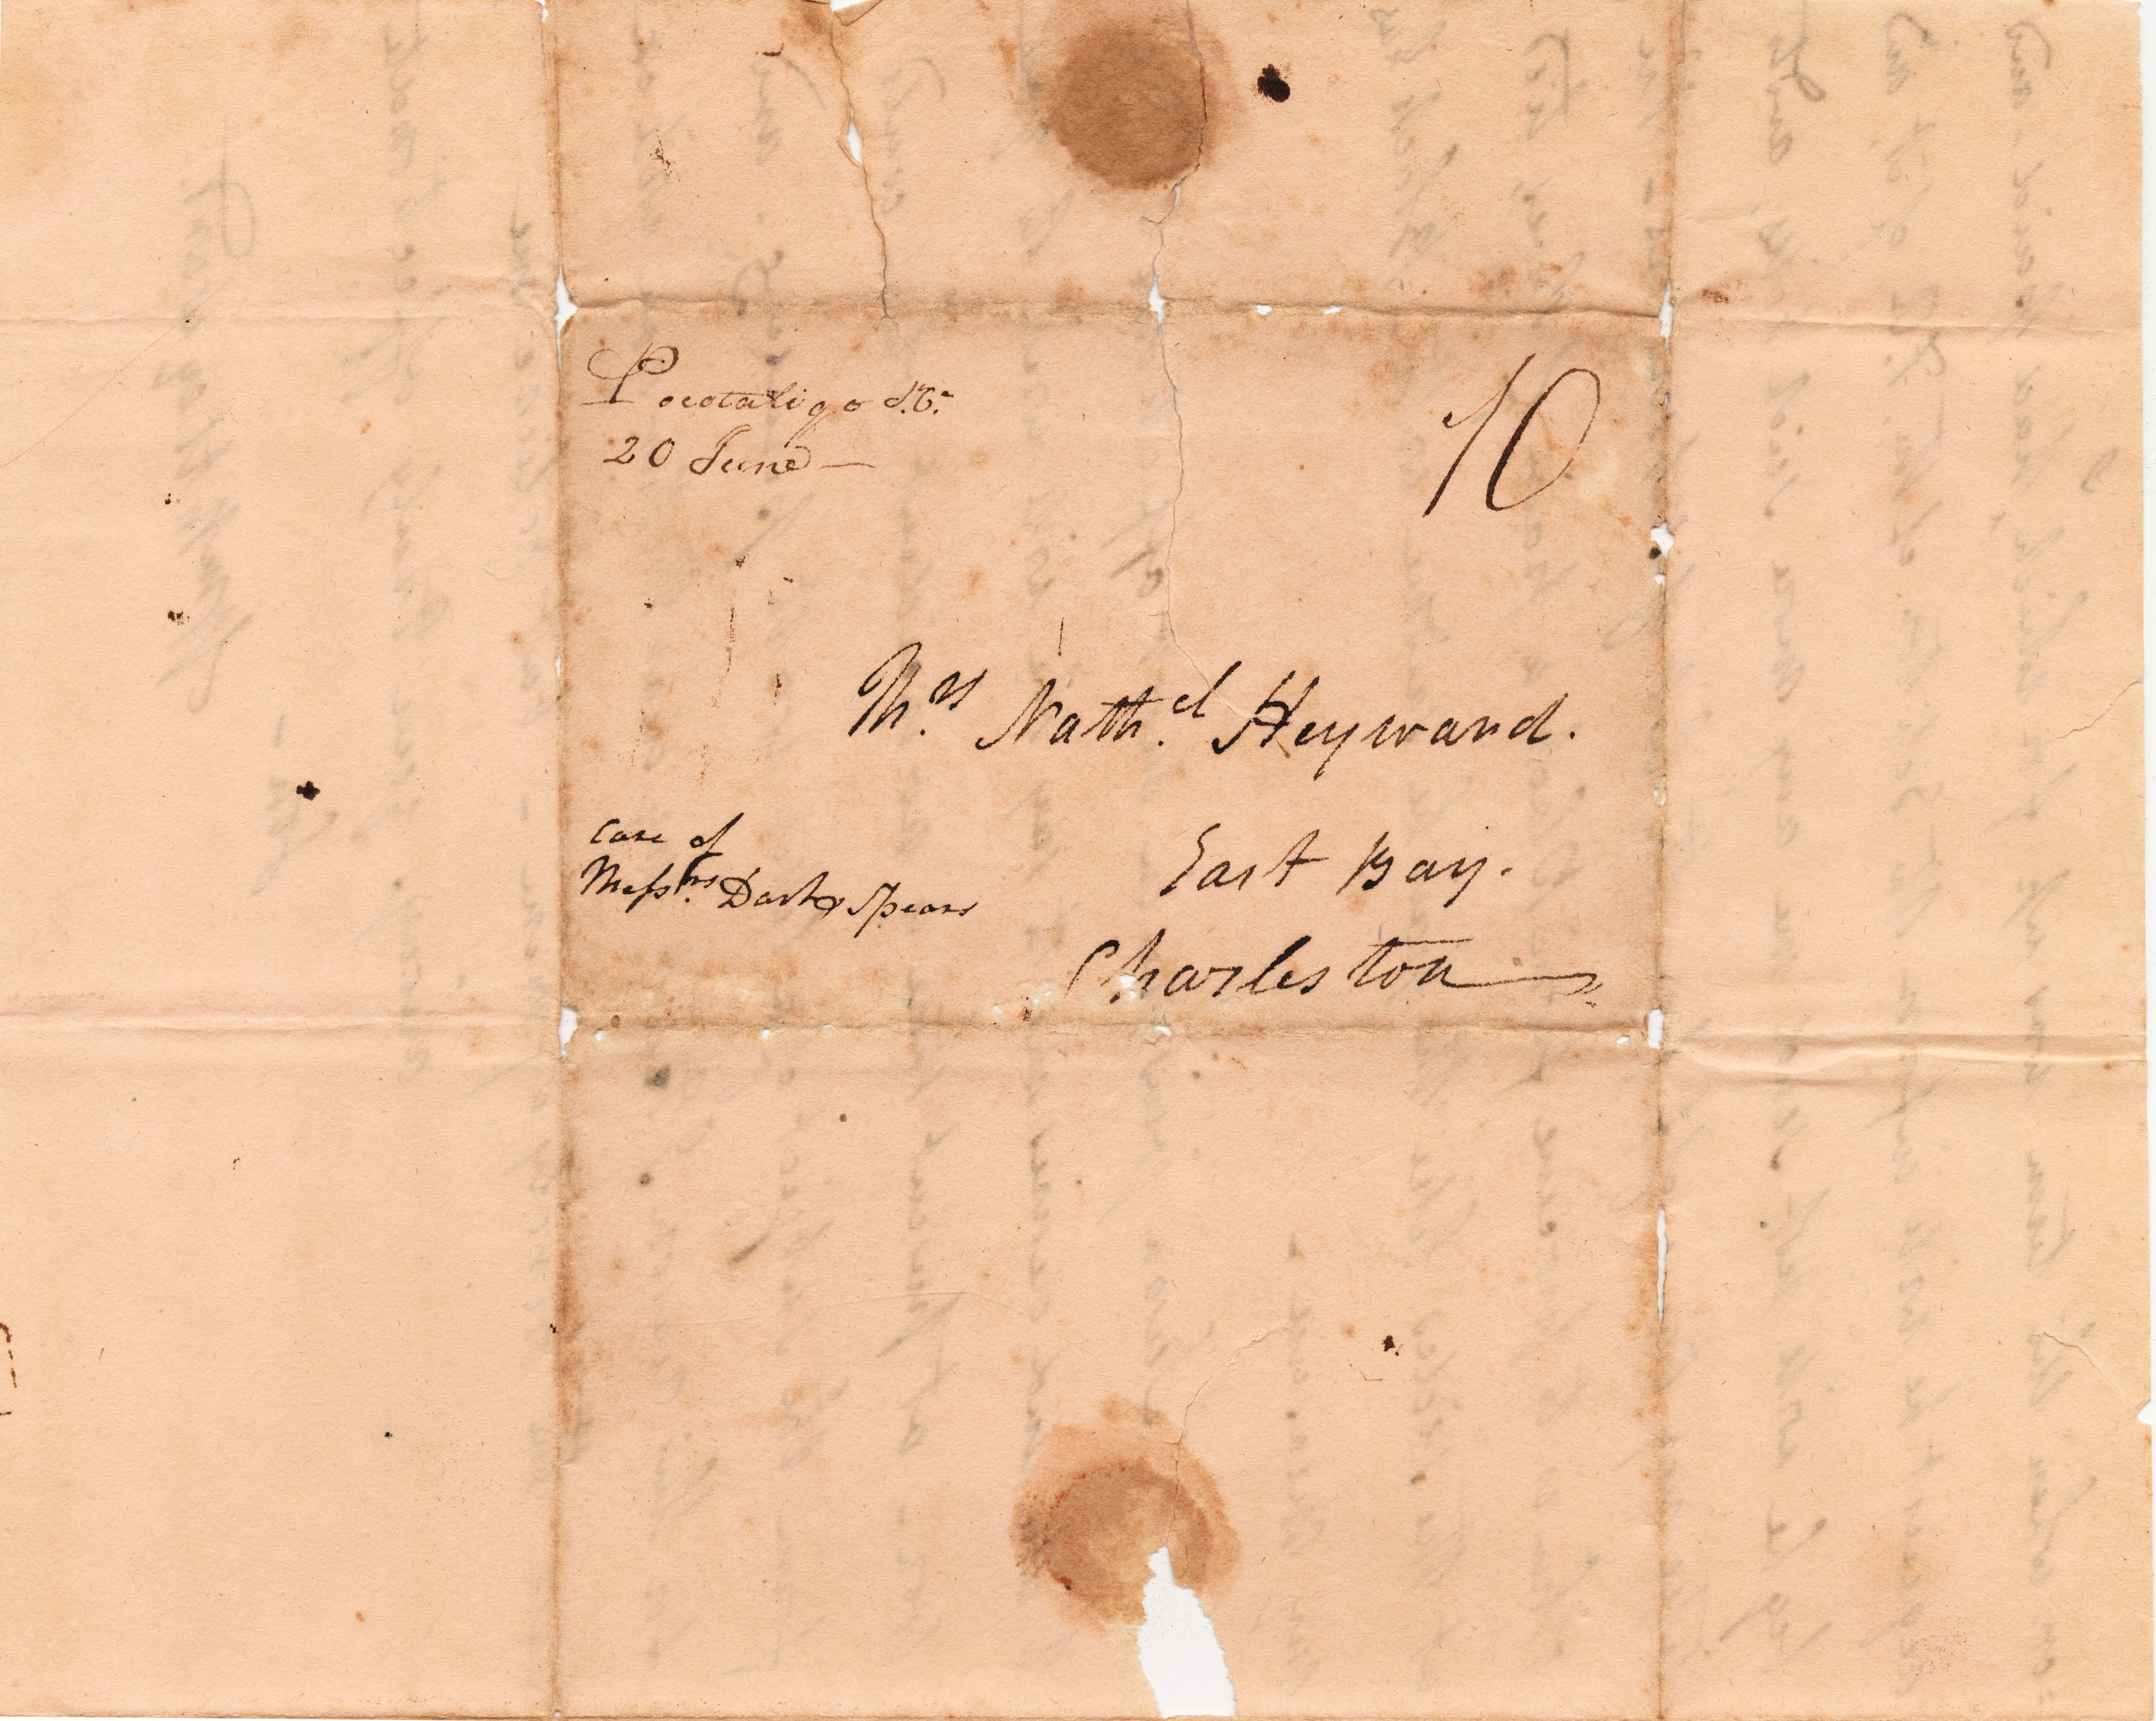 012a. William Manigault Heyward to Mother -- June 20th, ca. 1816